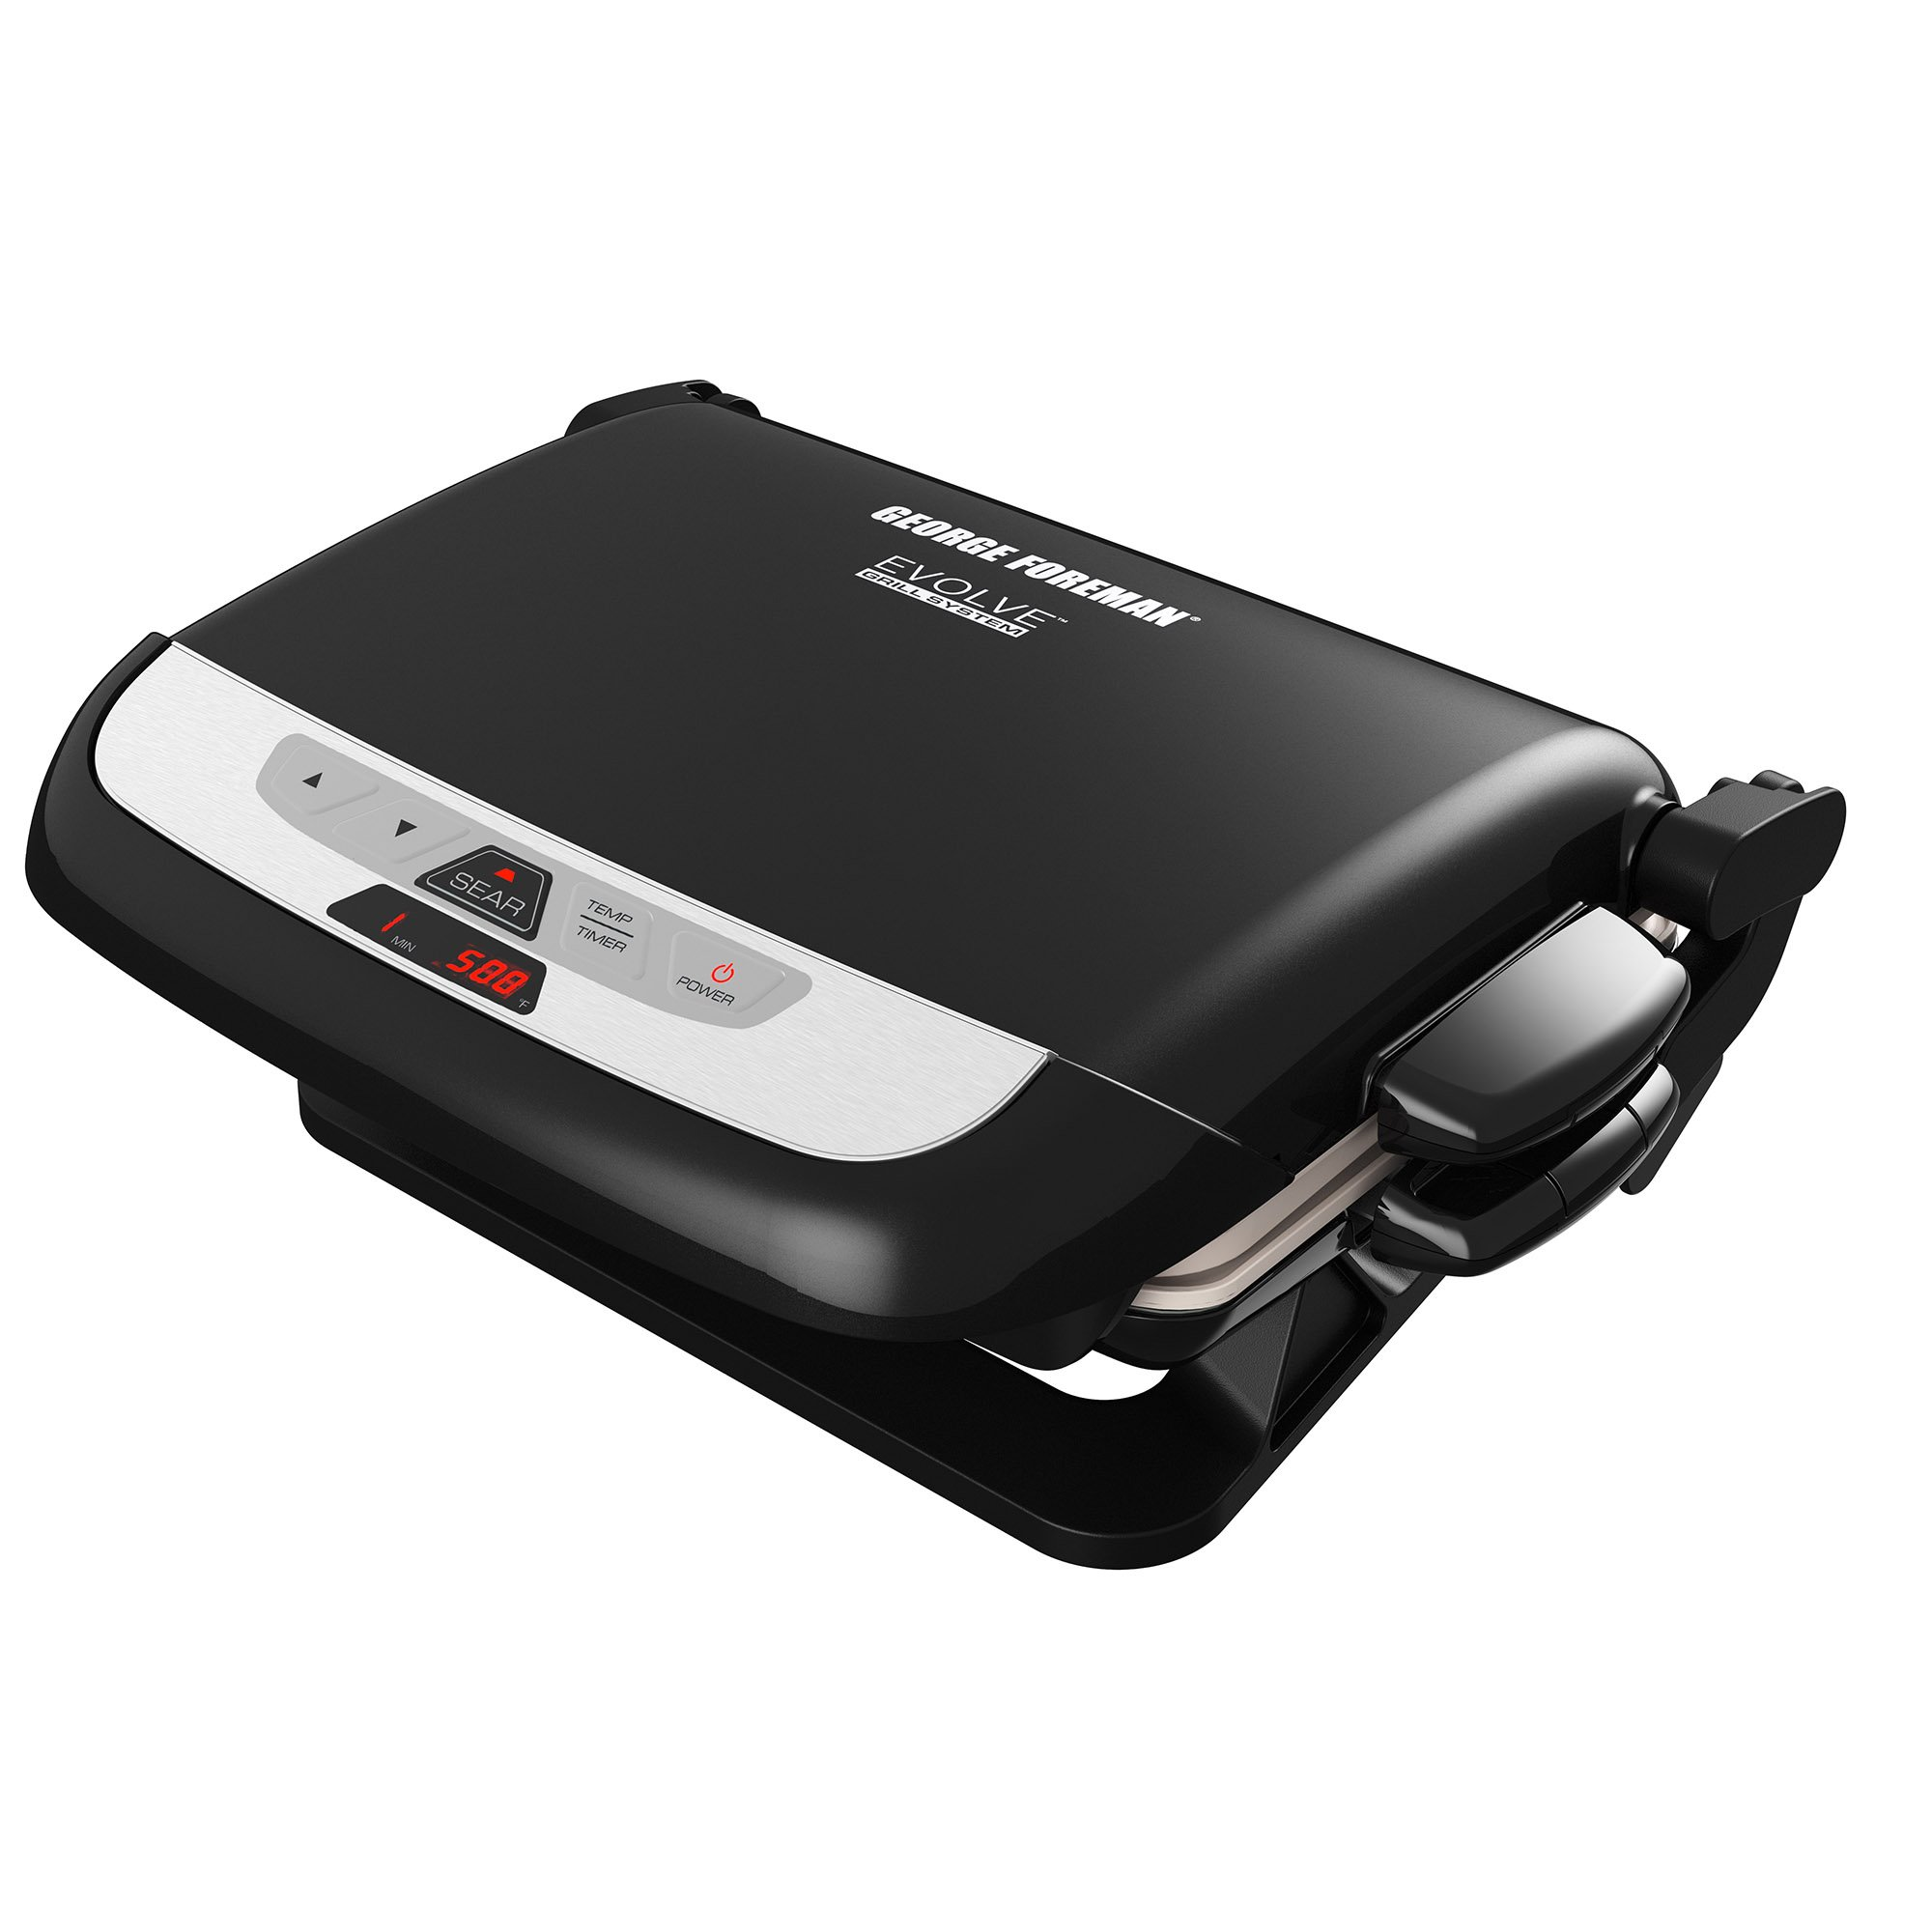 George Foreman GRP4842MB Multi-Plate Evolve Grill, (Ceramic Grilling Plates, and Waffle Plates Included), Black by George Foreman (Image #1)